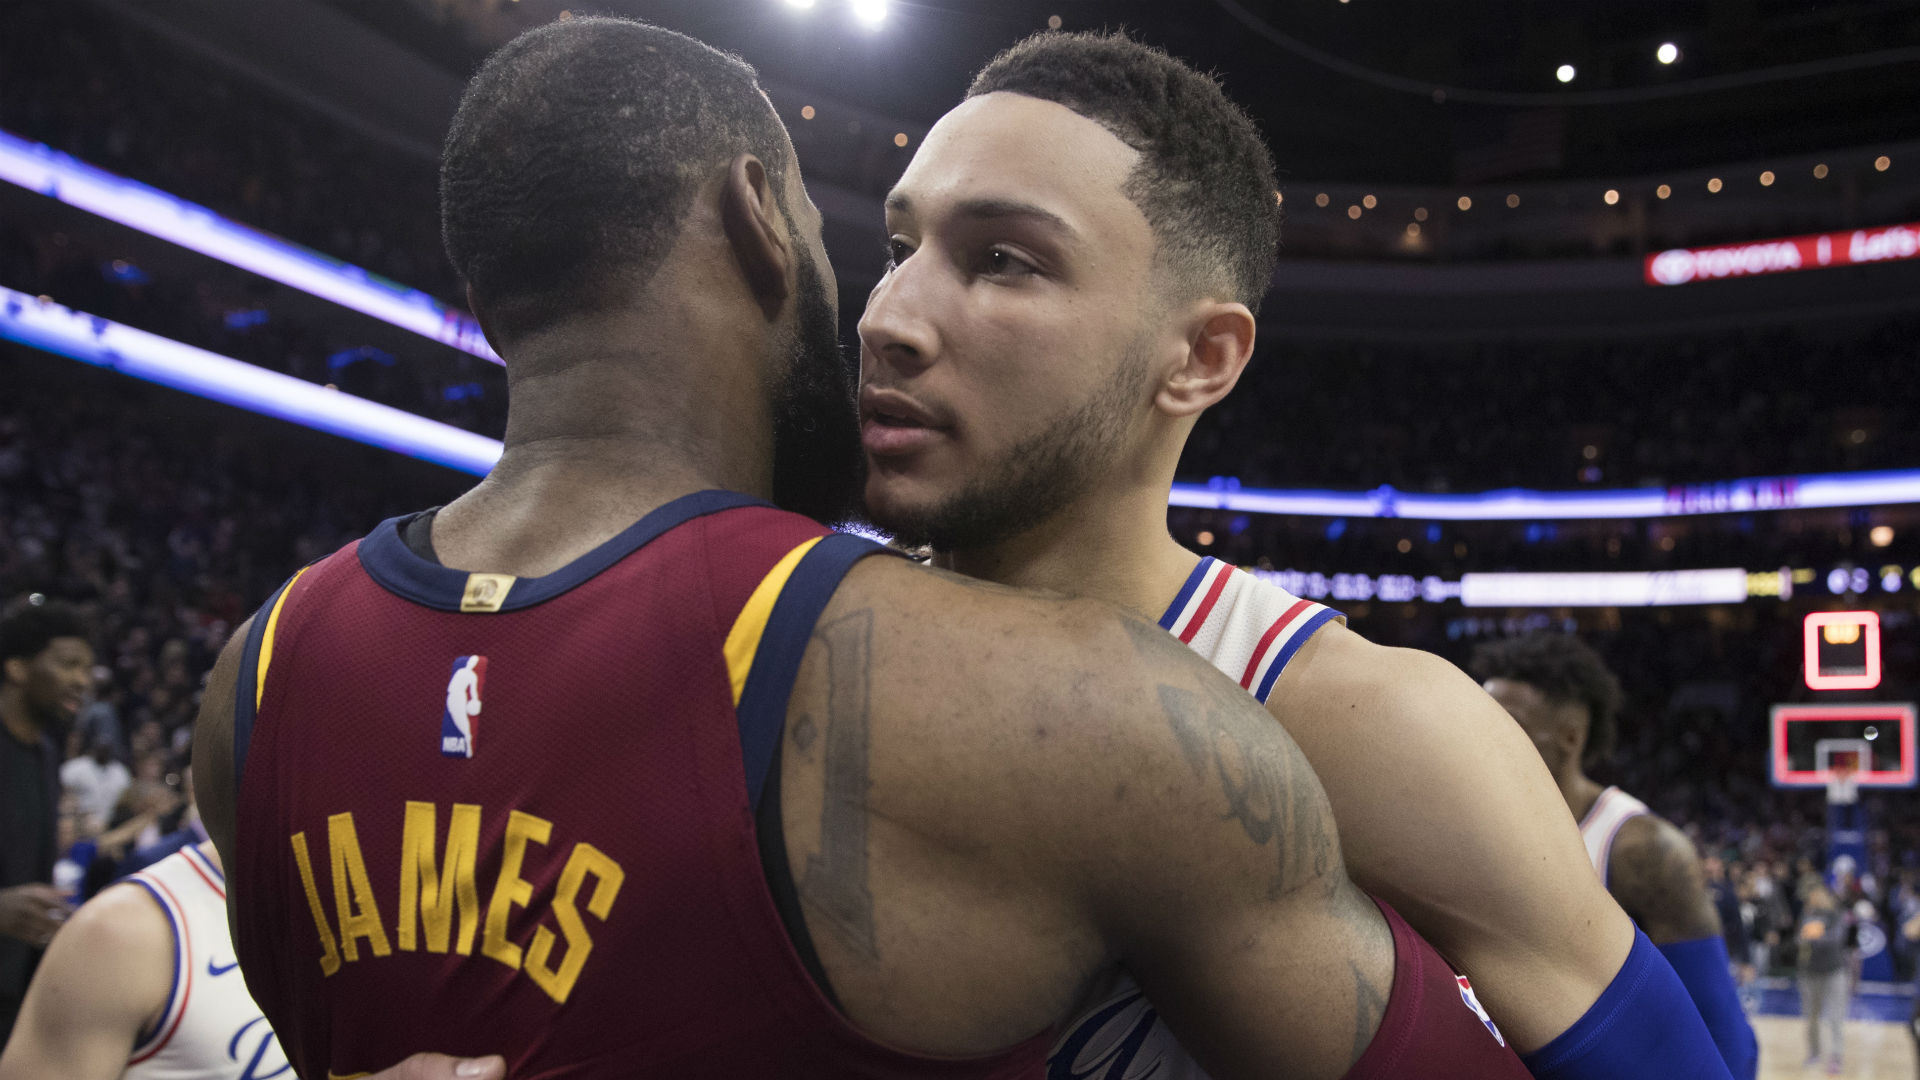 Ben Simmons disappointed he won't share court with LeBron James in Philadelphia